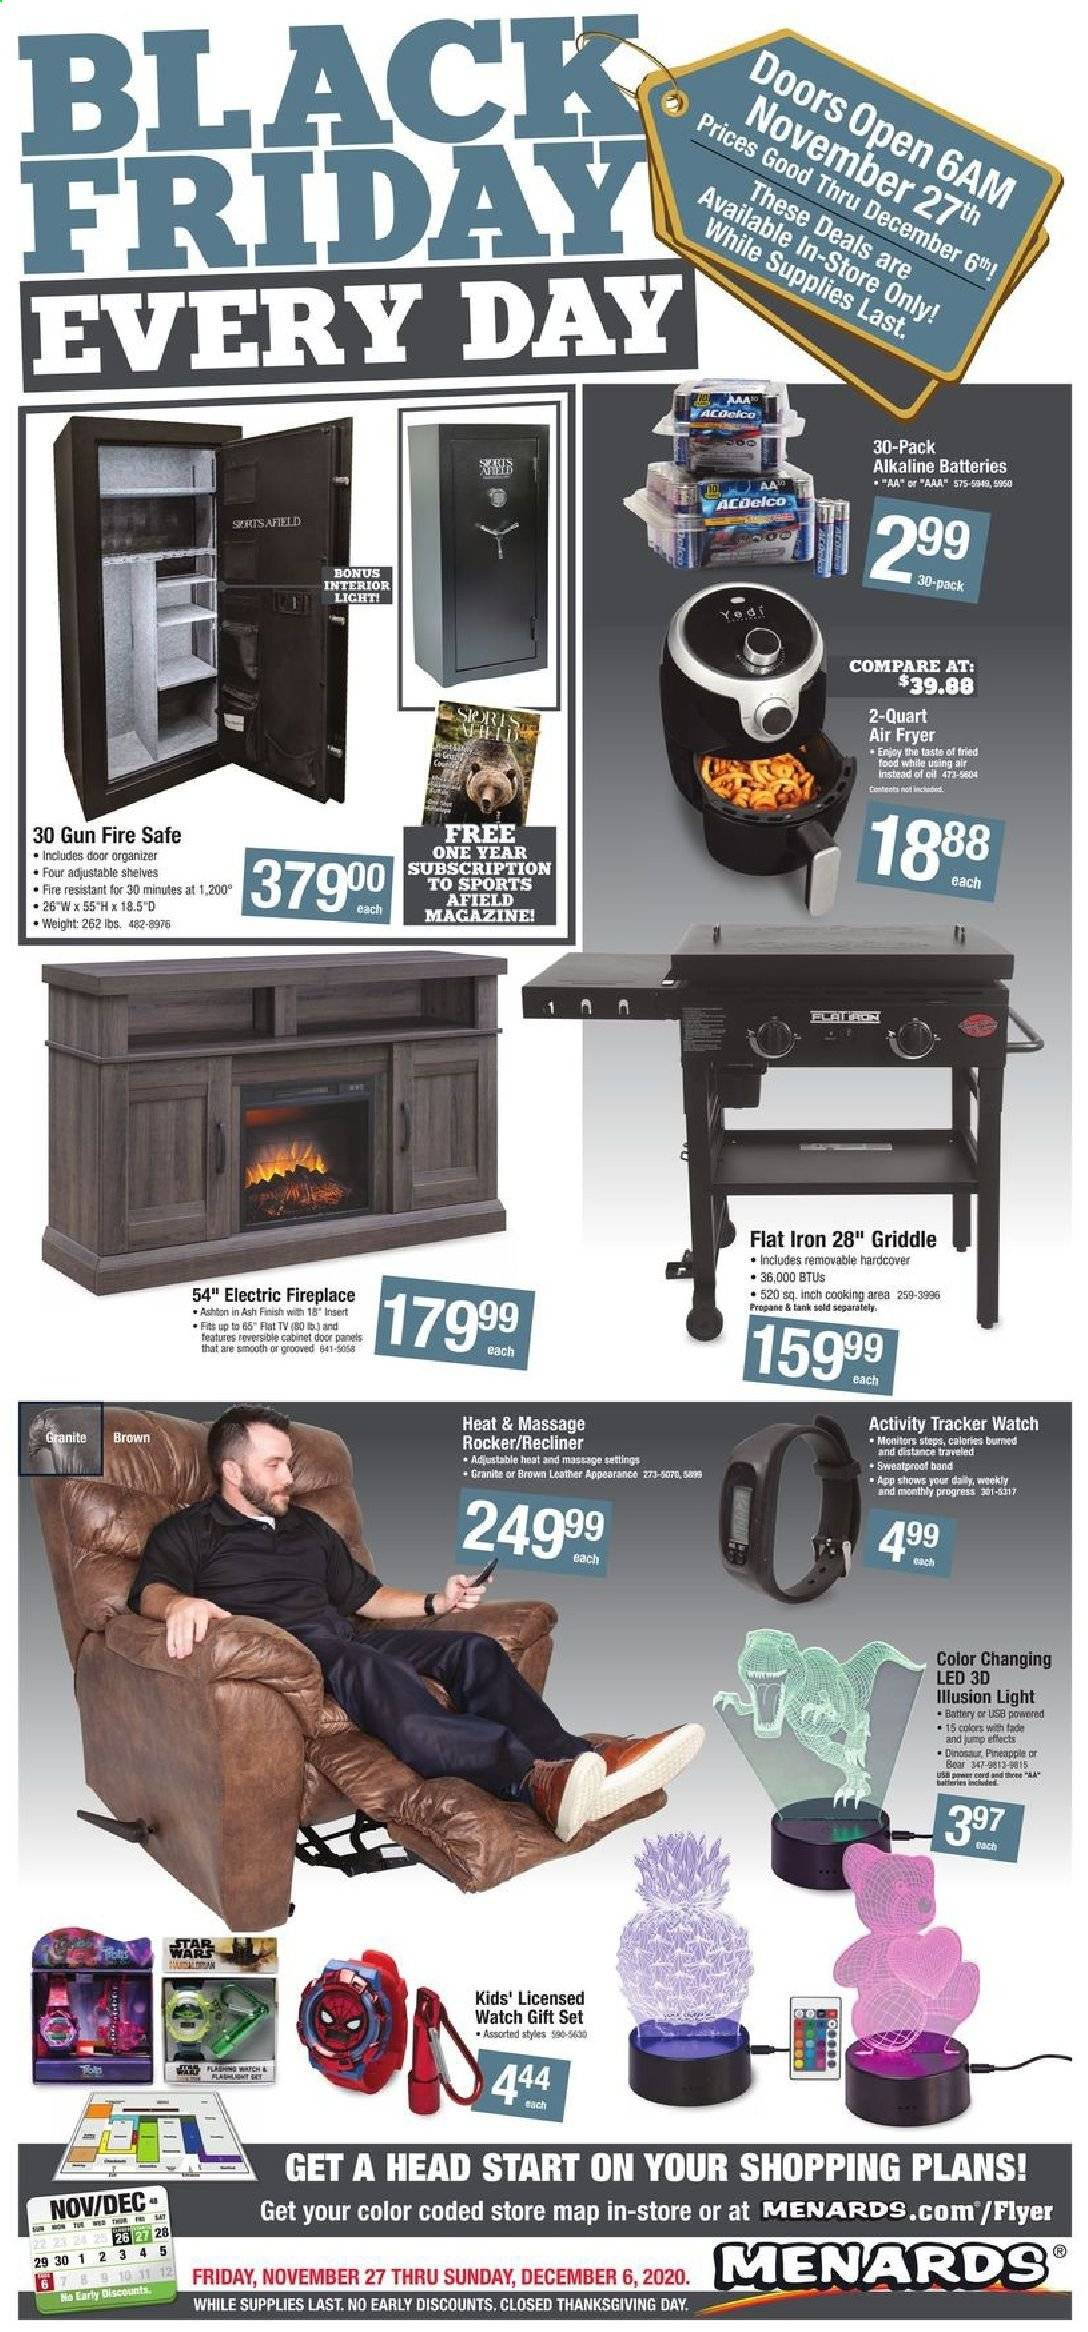 Menards Flyer - 11.27.2020 - 12.06.2020 - Sales products - activity tracker, battery, cabinet, door, fireplace, fryer, gift set, shelf, shelves, watch, gun, hairstyling iron, iron, pineapple, air fryer, electric fireplace, dinosaur, rocker, oil, USB, led. Page 1.